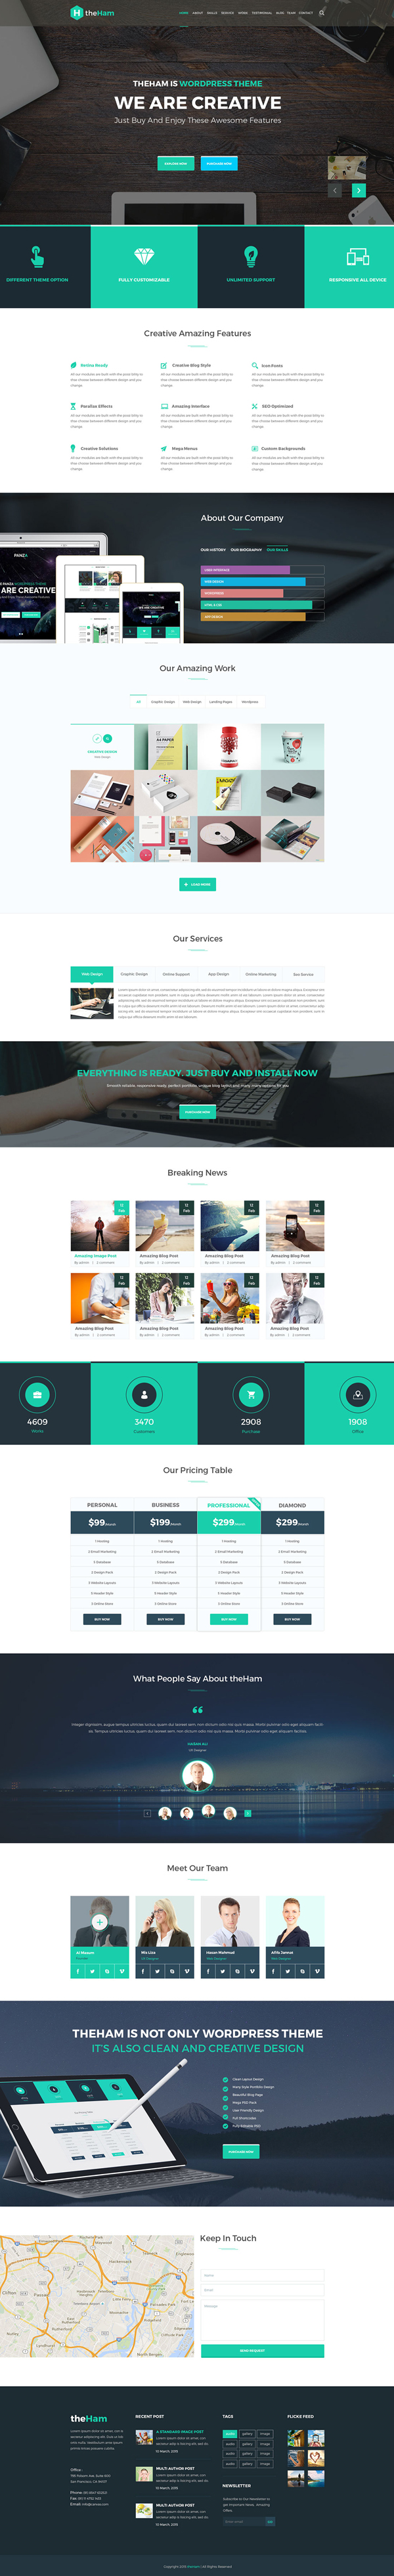 15 free responsive psd website templates freebies graphic